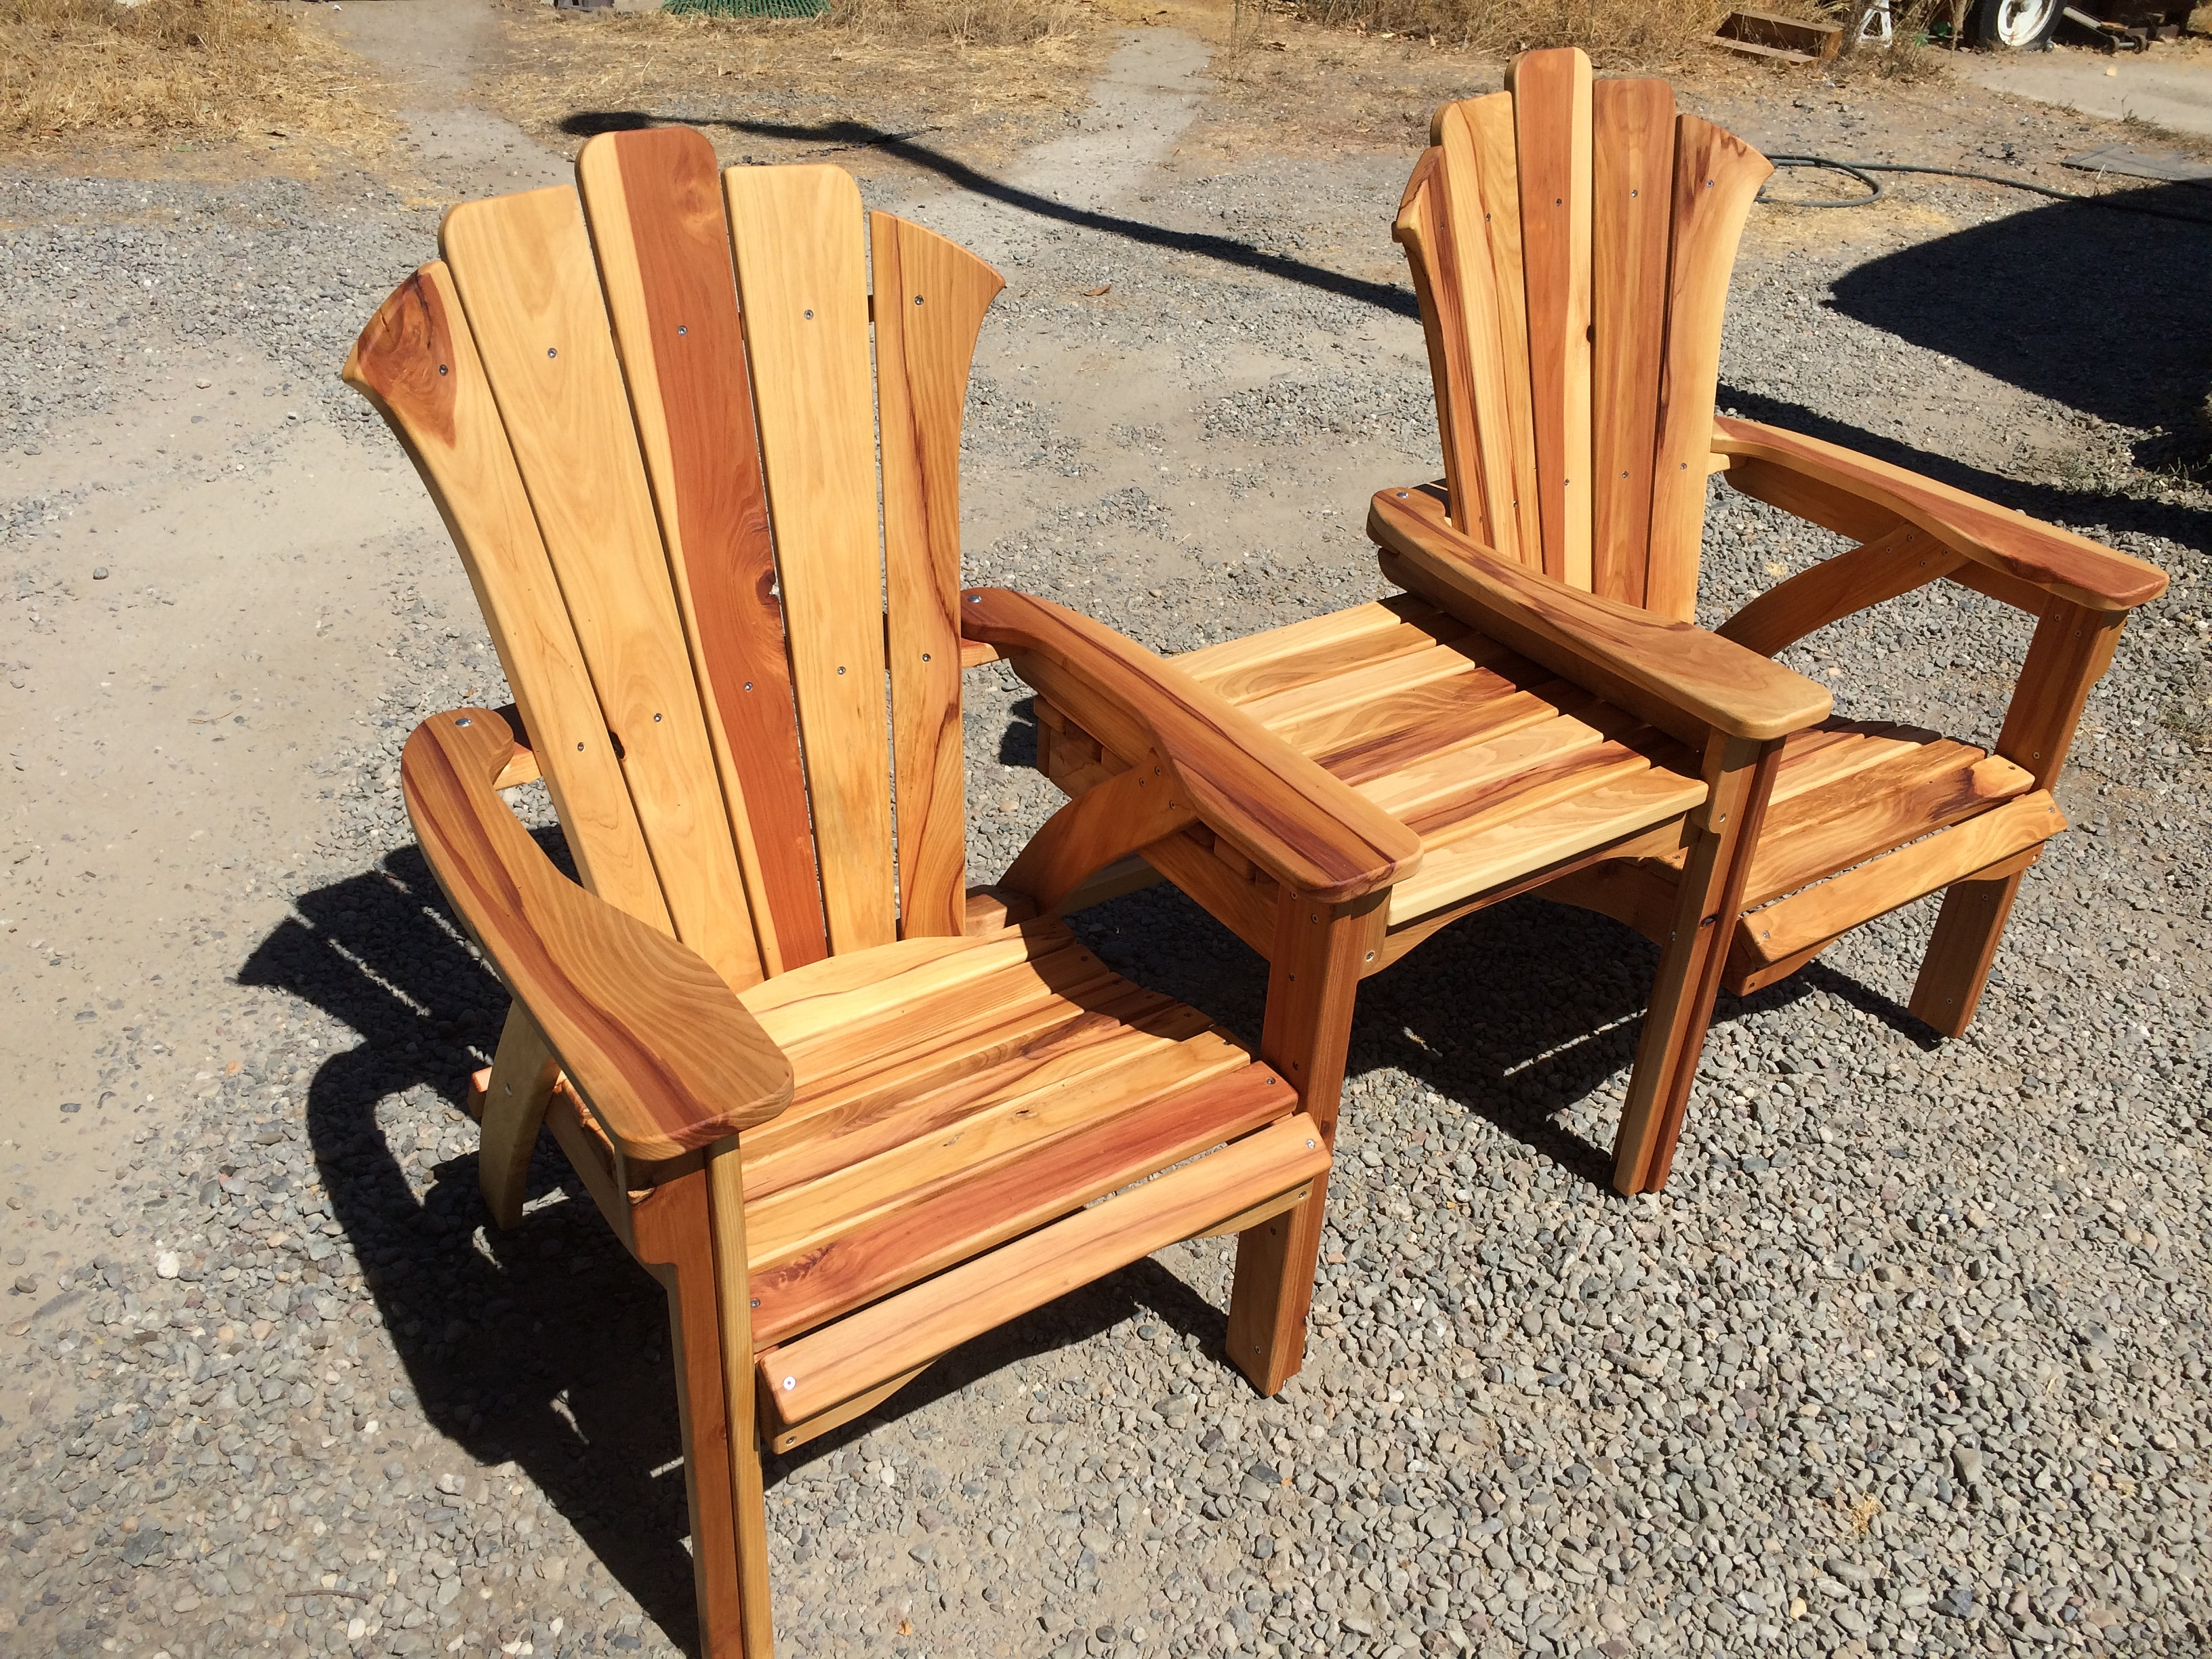 Superb California Redwood Adirondack Side By Side Chairs With Stainless Steel  Hardware. These Adirondack Chairs Have A Table Attached In The Middle And  Are Very ...